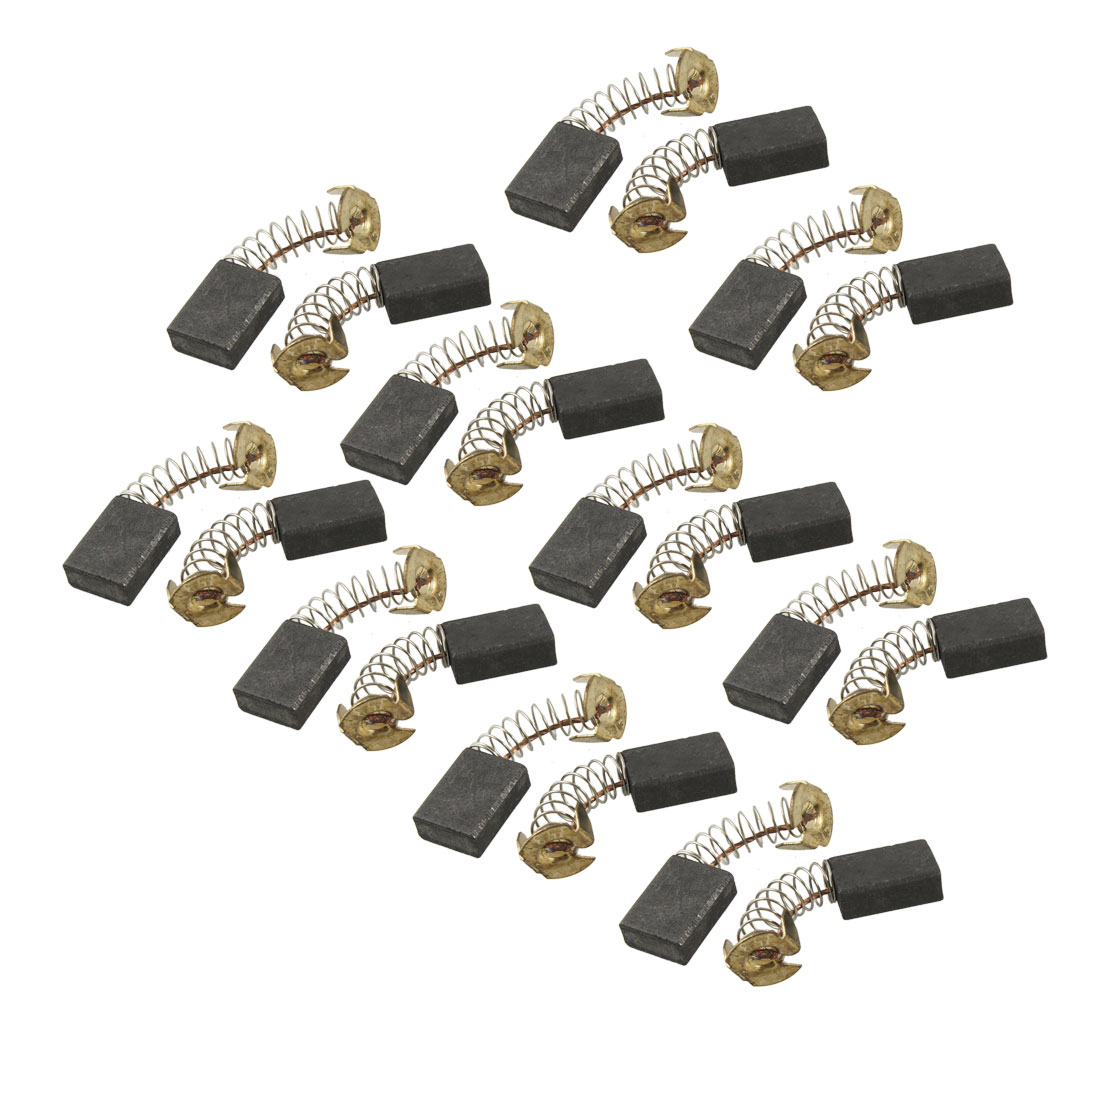 "20 Pcs Electric Drill Motor Carbon Brushes <font><b>23</b></font>/32"" <font><b>X</b></font> <font><b>17</b></font>/32"" <font><b>X</b></font> <font><b>1</b></font>/<font><b>4</b></font>"""